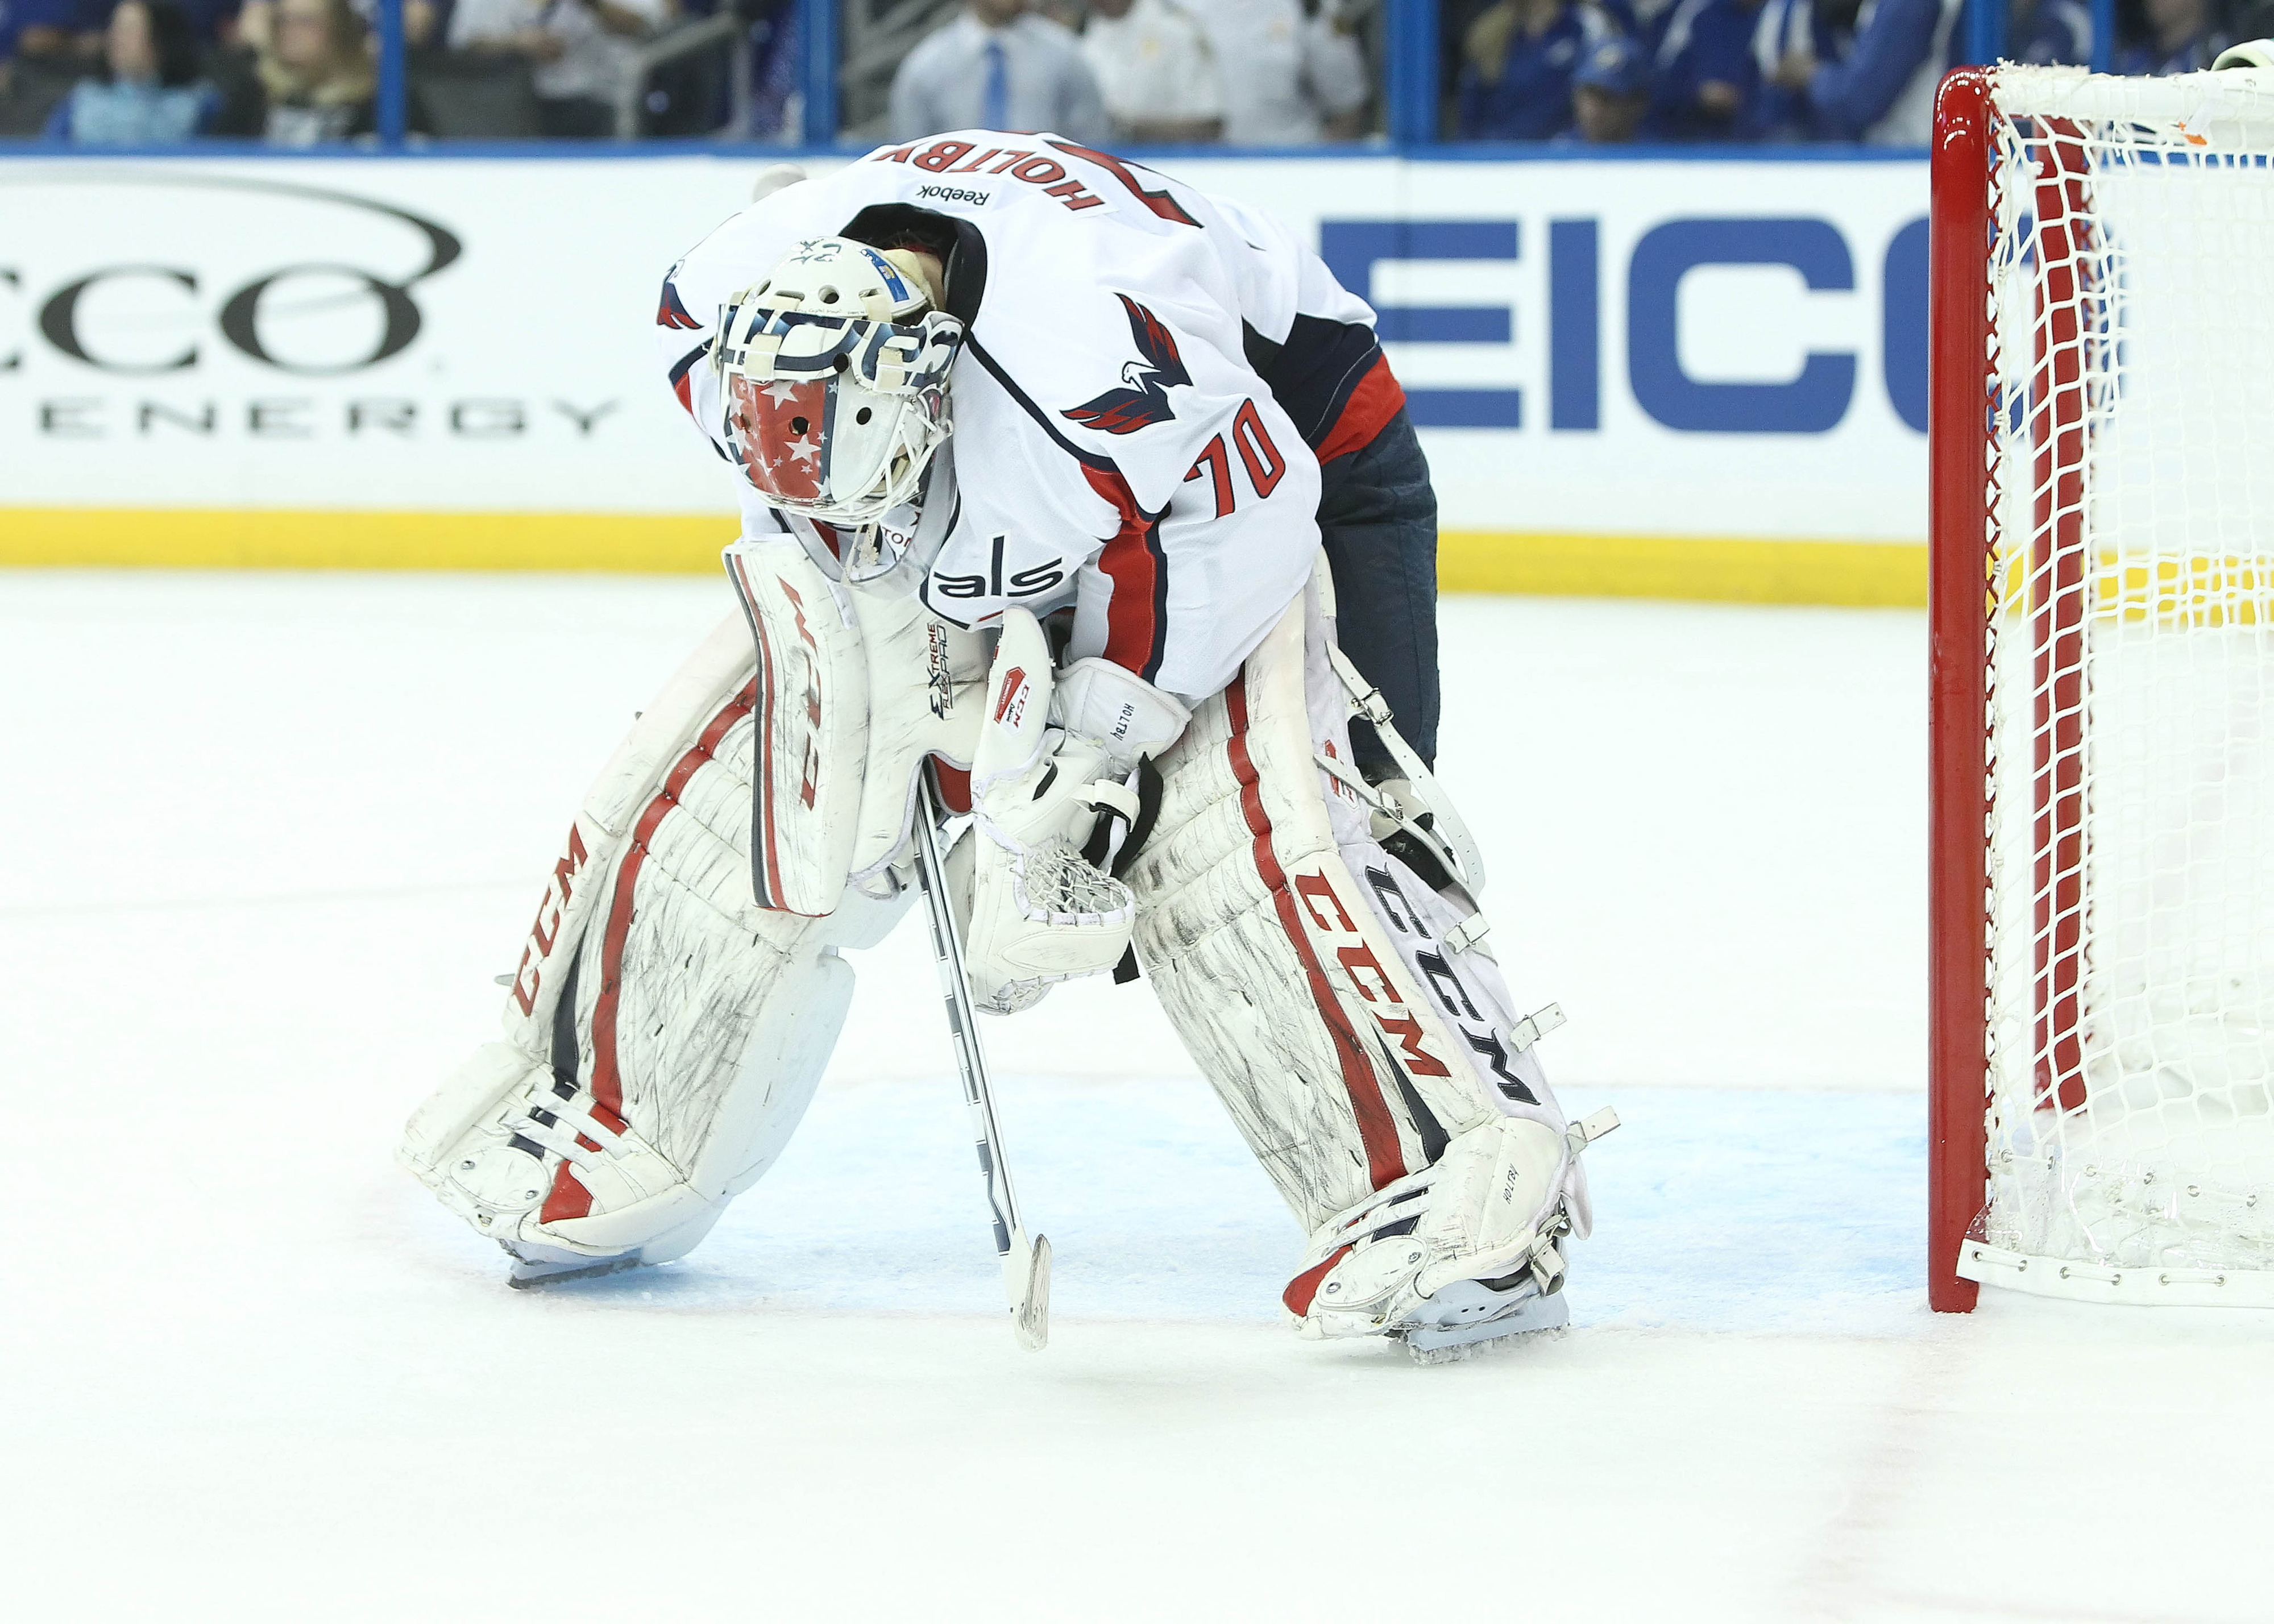 Goalie Braden Holtby is among many on the Capitals roster who have yet to find their A-game under Coach Adam Oates. Despite his dismal 4.03 GAA and .874 Save %, he has 3 of the Caps 4 wins this season.